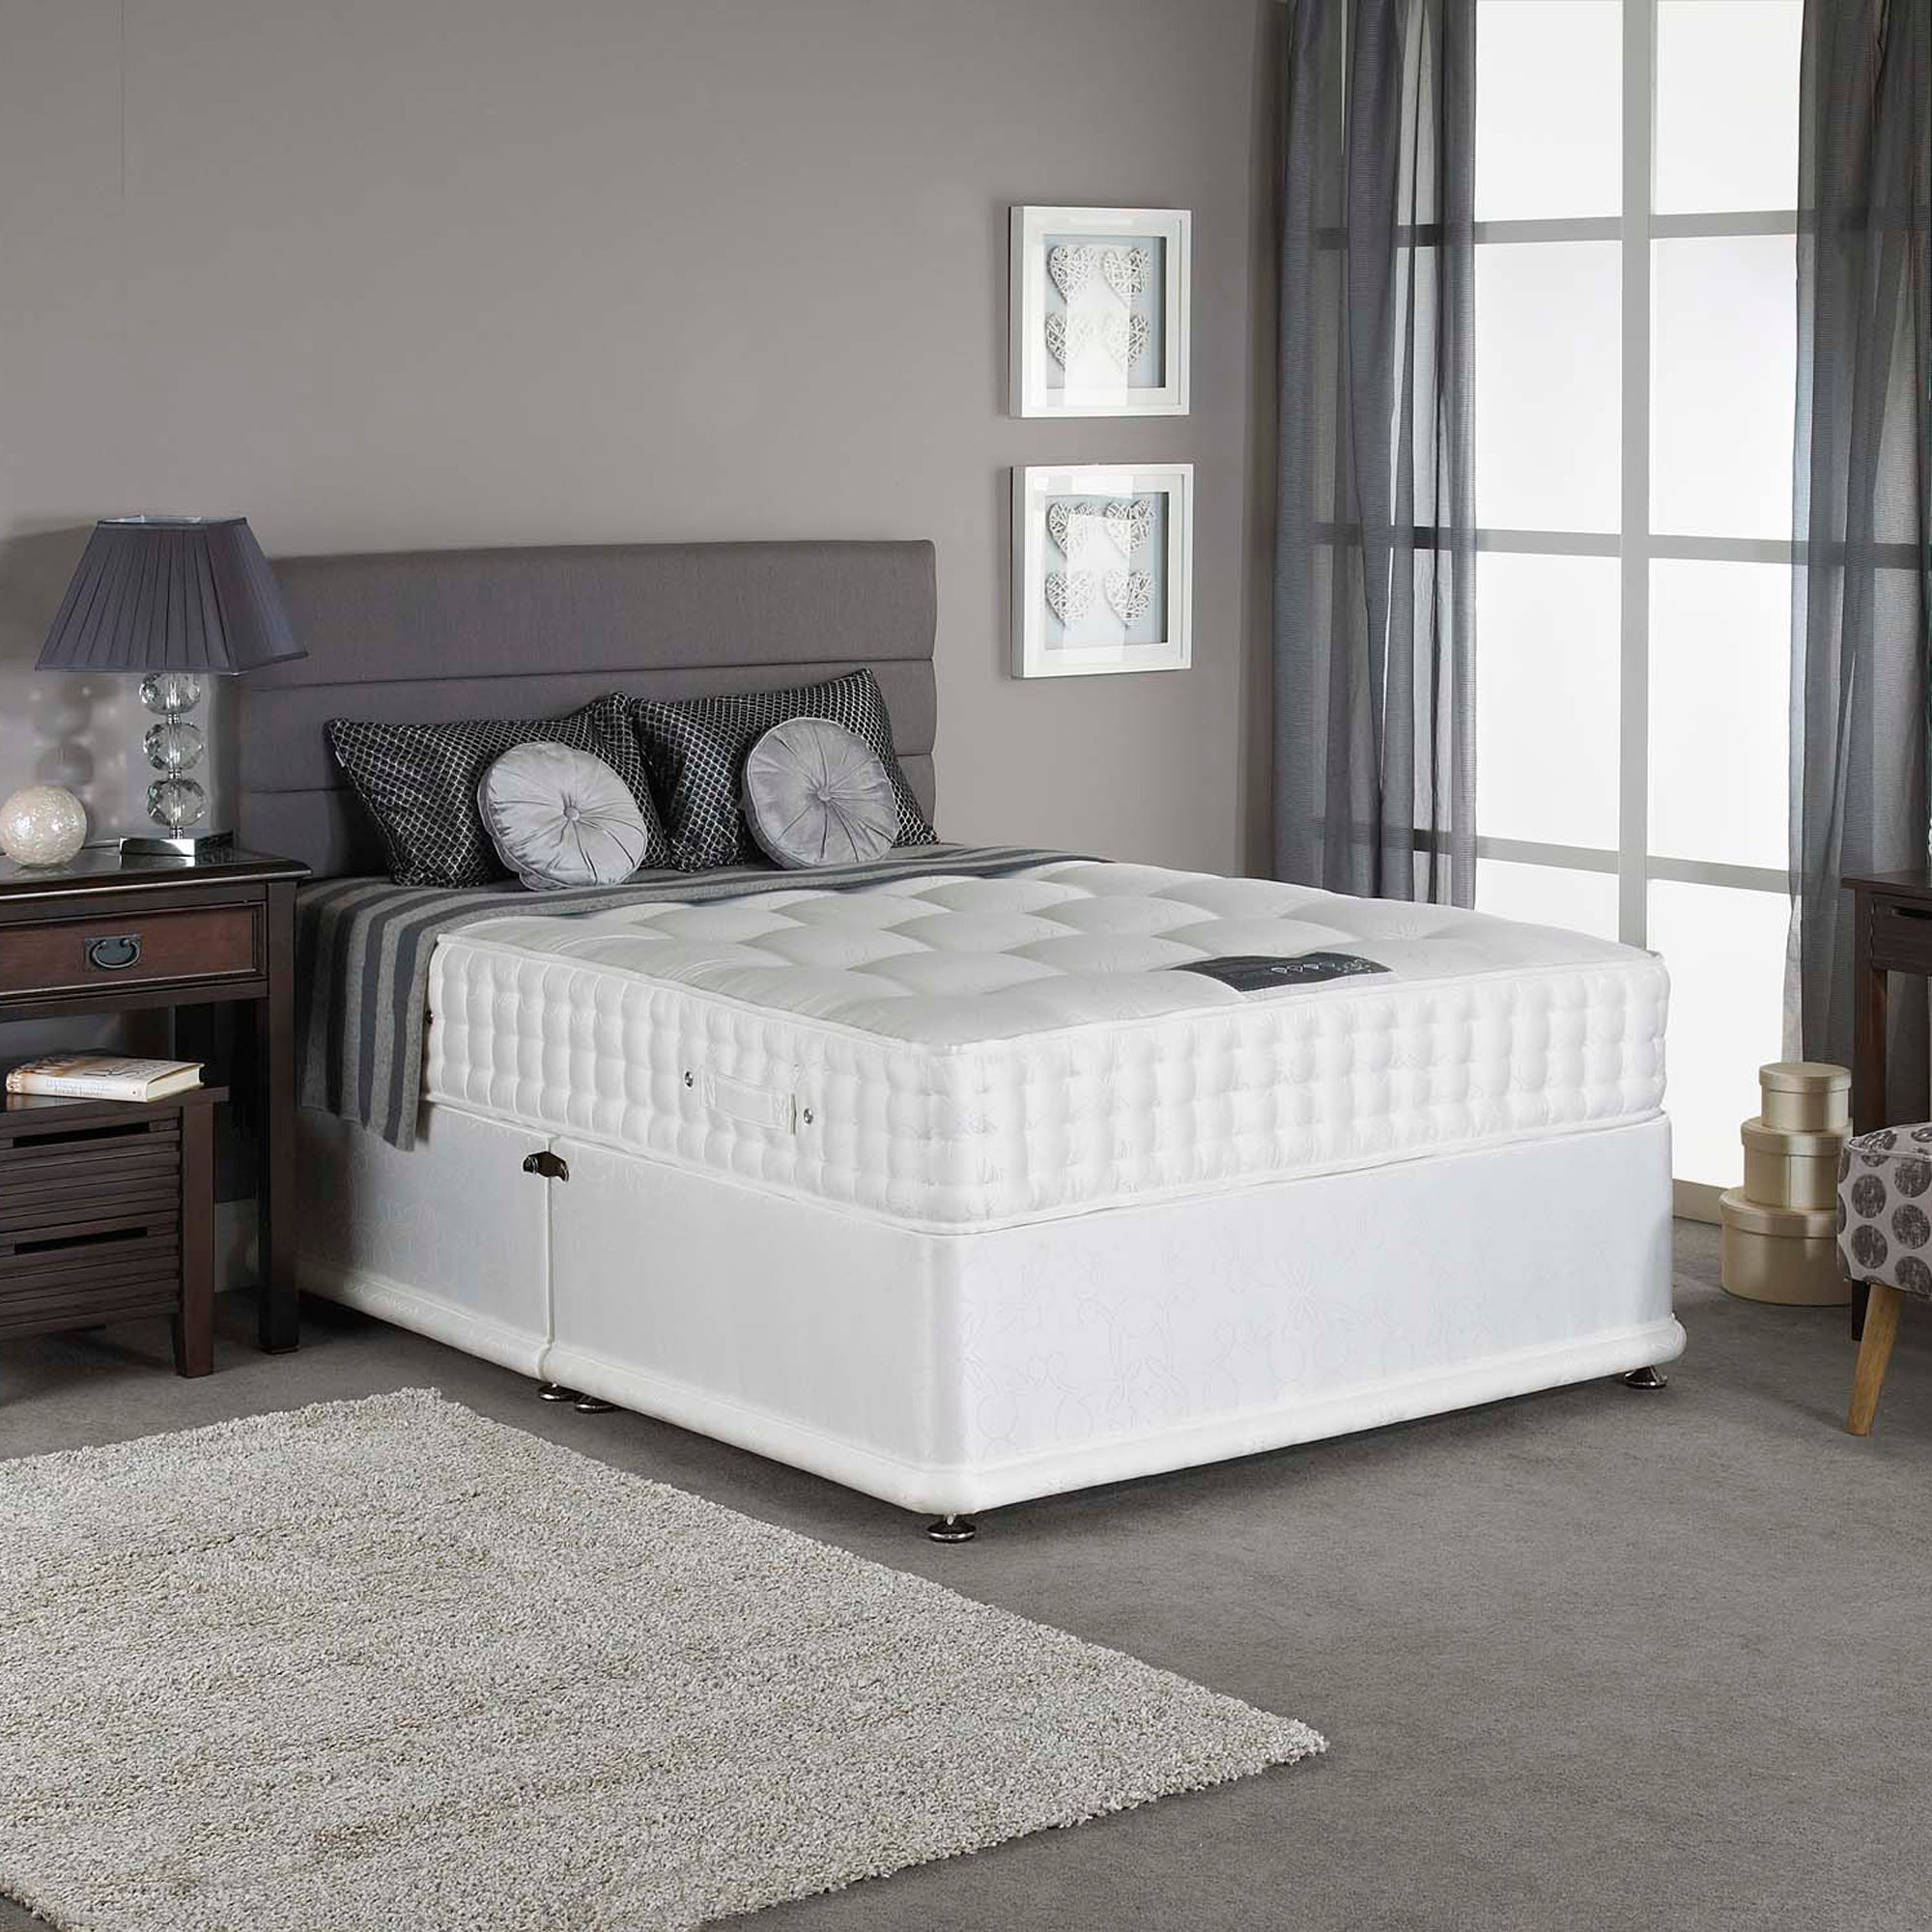 York Sprung Divan Set with 2 Drawers